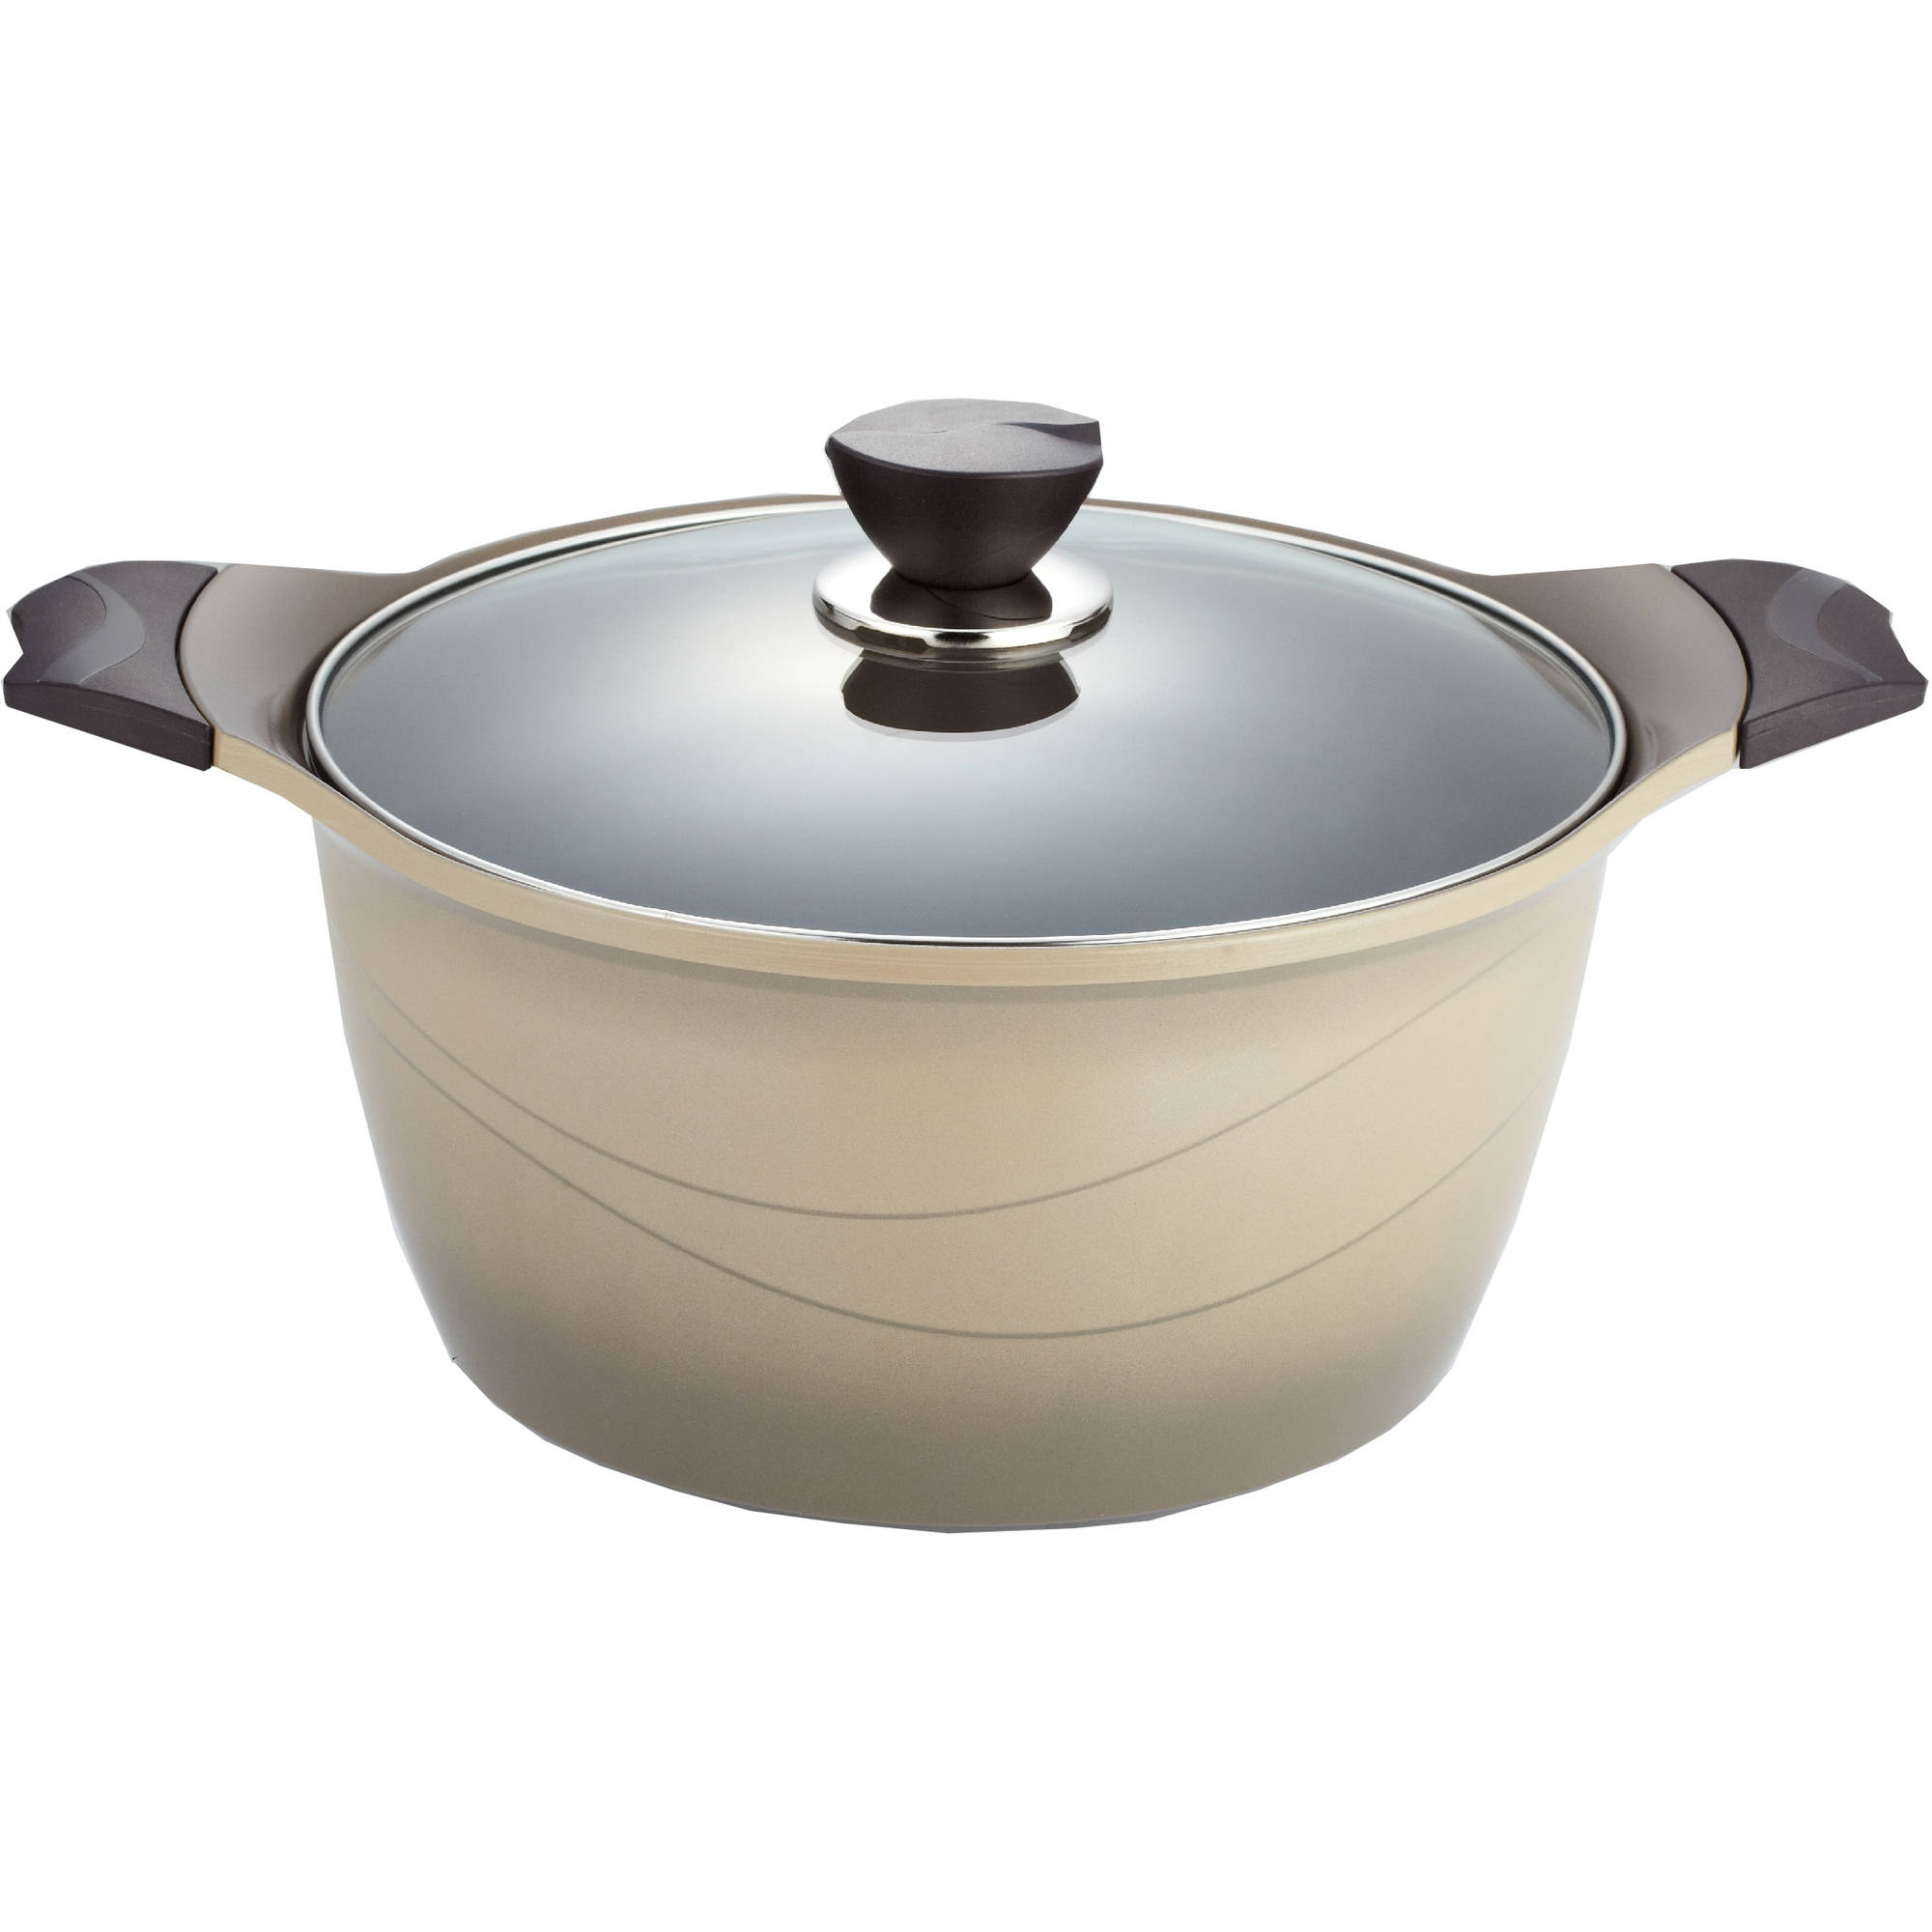 Della Ceramic Coated Non Stick Premium Cookware 5 6 Quart